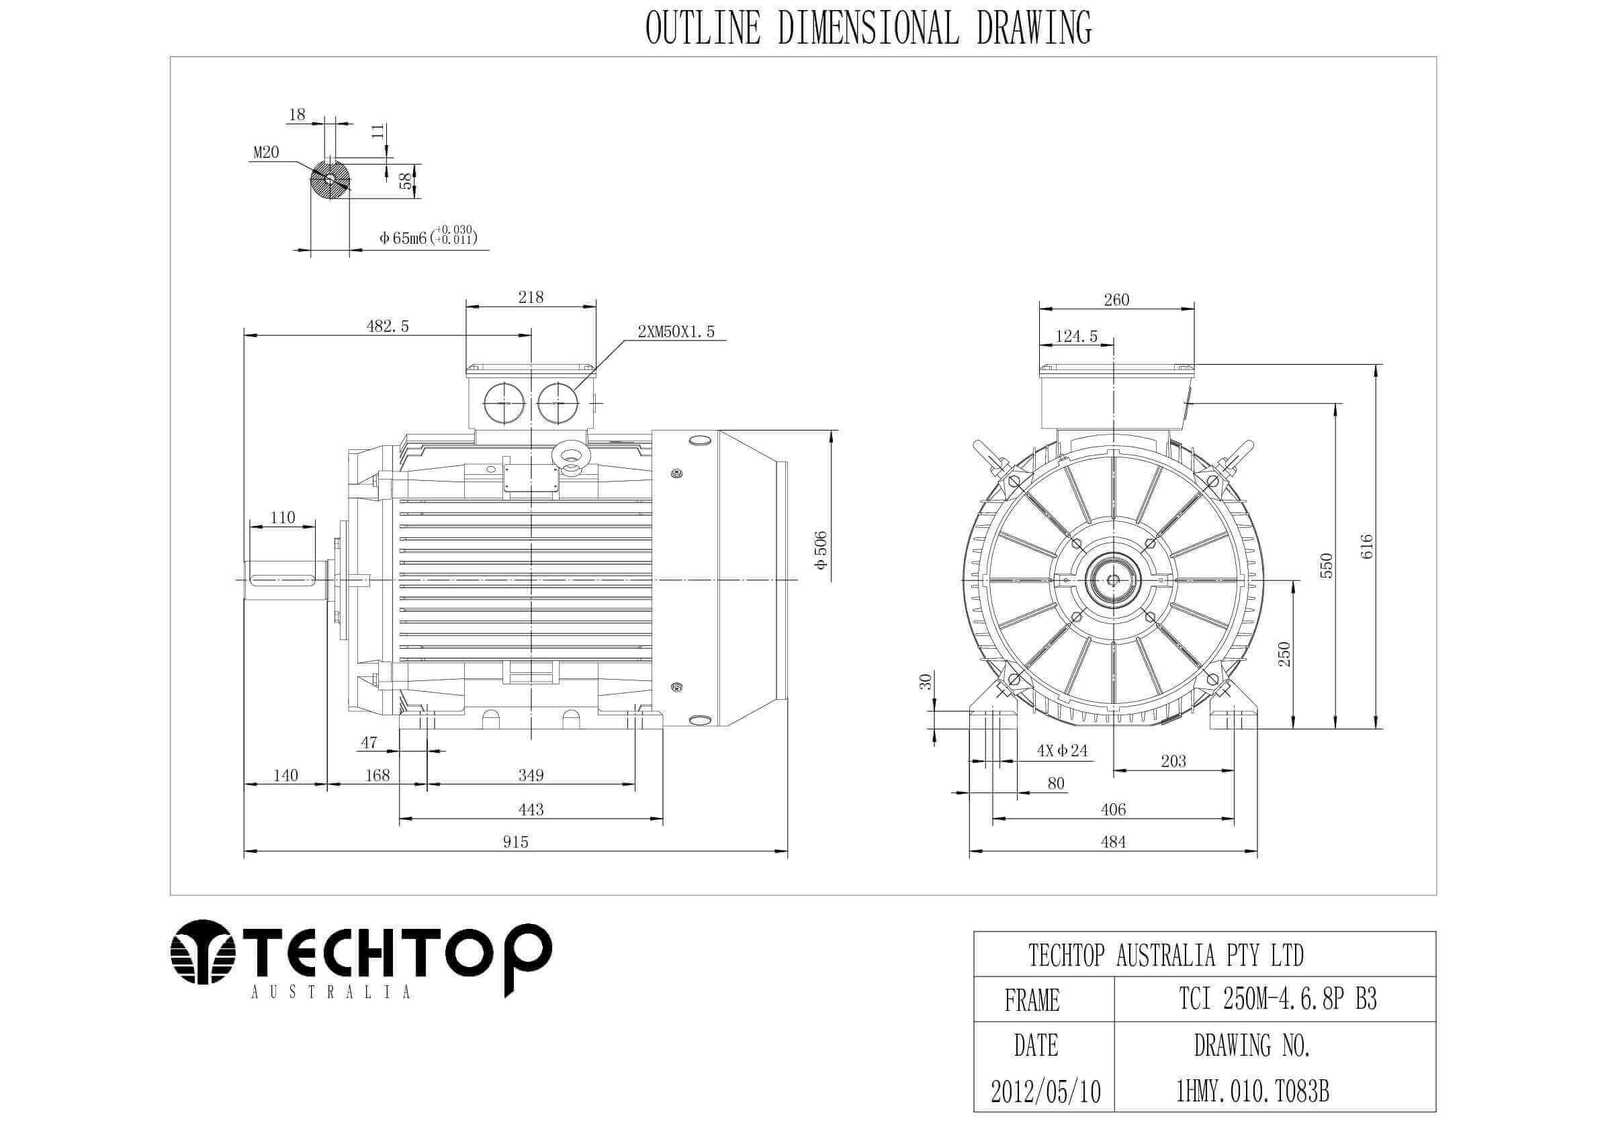 Techtop 37 Kw Motor 415v 3 Phase 6 Pole 980 Rpm Foot